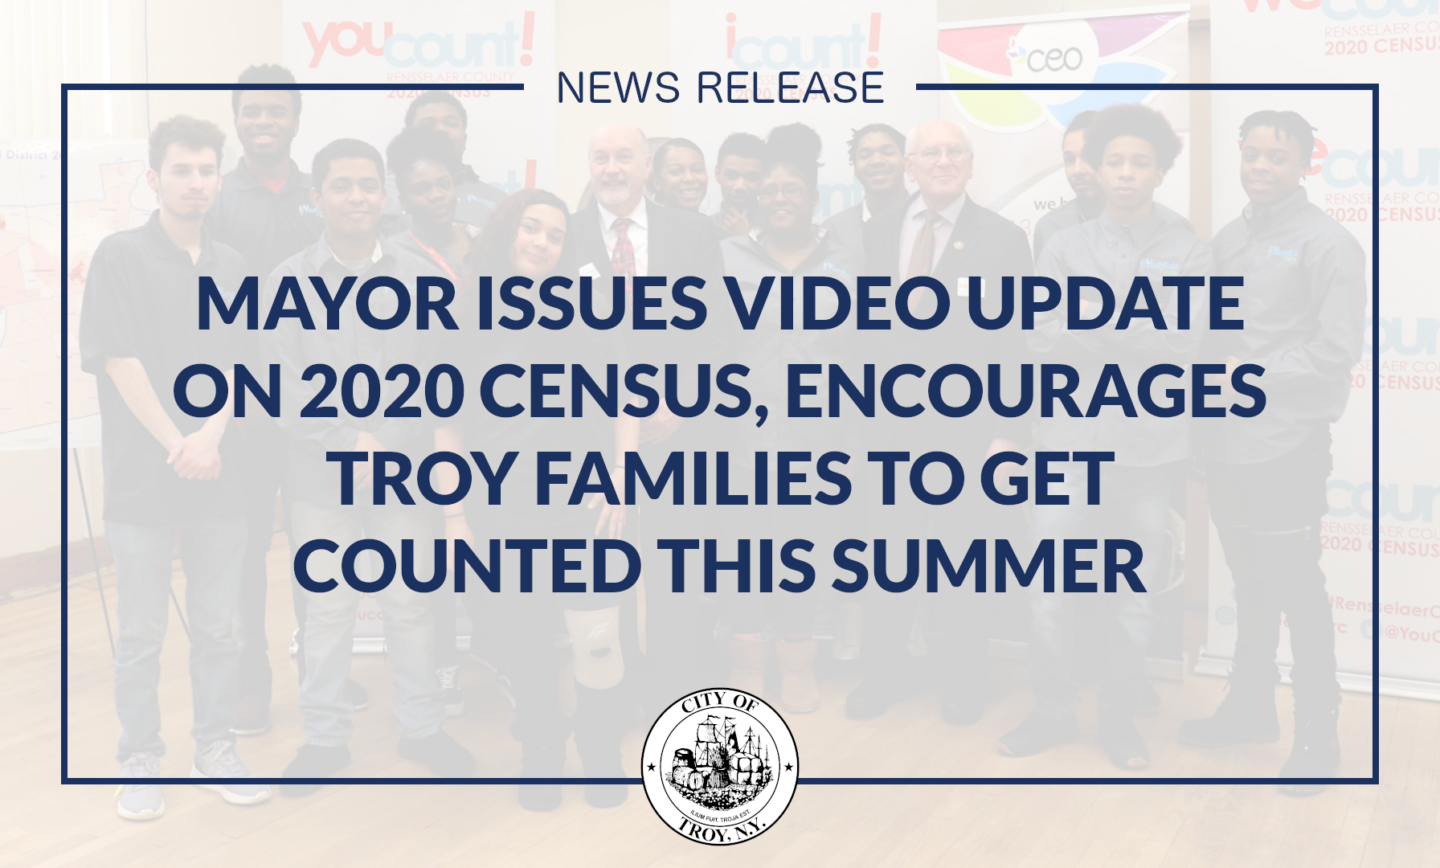 Mayor Madden Issues Video Update on 2020 Census, Encourages Troy Families to Get Counted this Summer